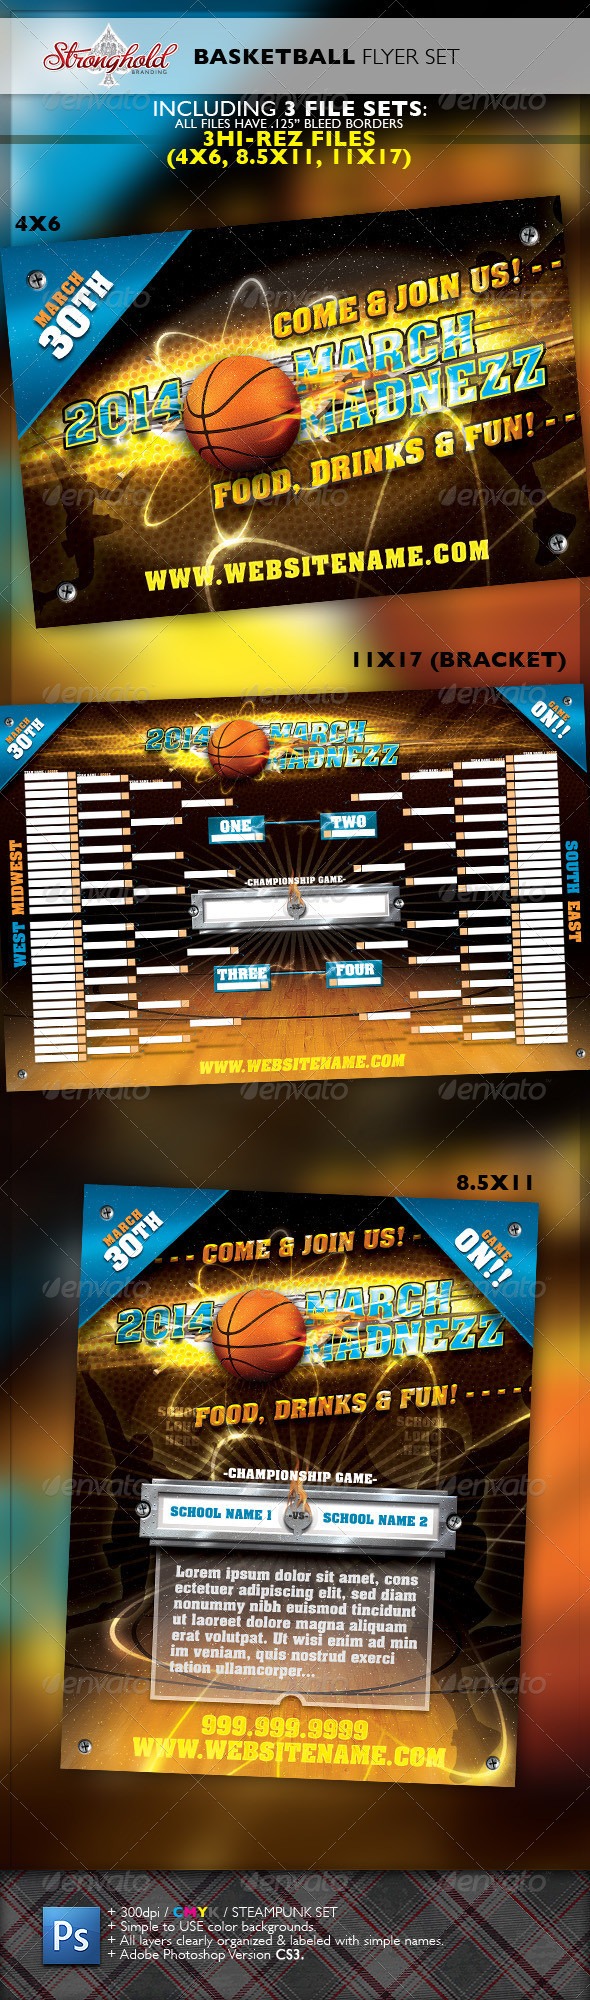 March Madnezz Basketball Tournament Flyer Set - Commerce Flyers